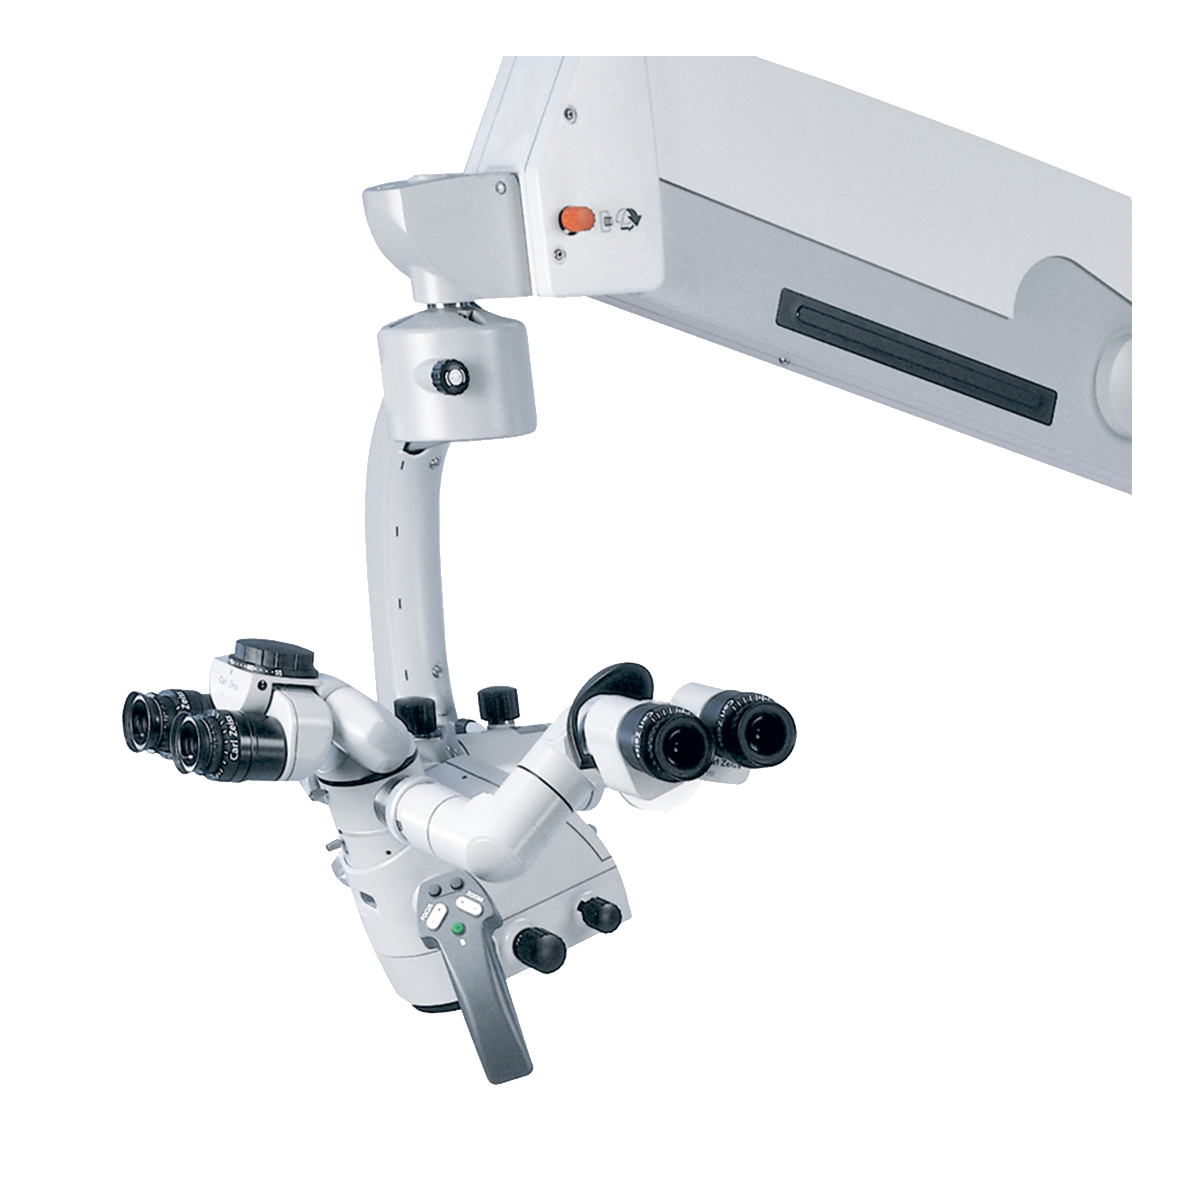 Operating microscope co-observation modules